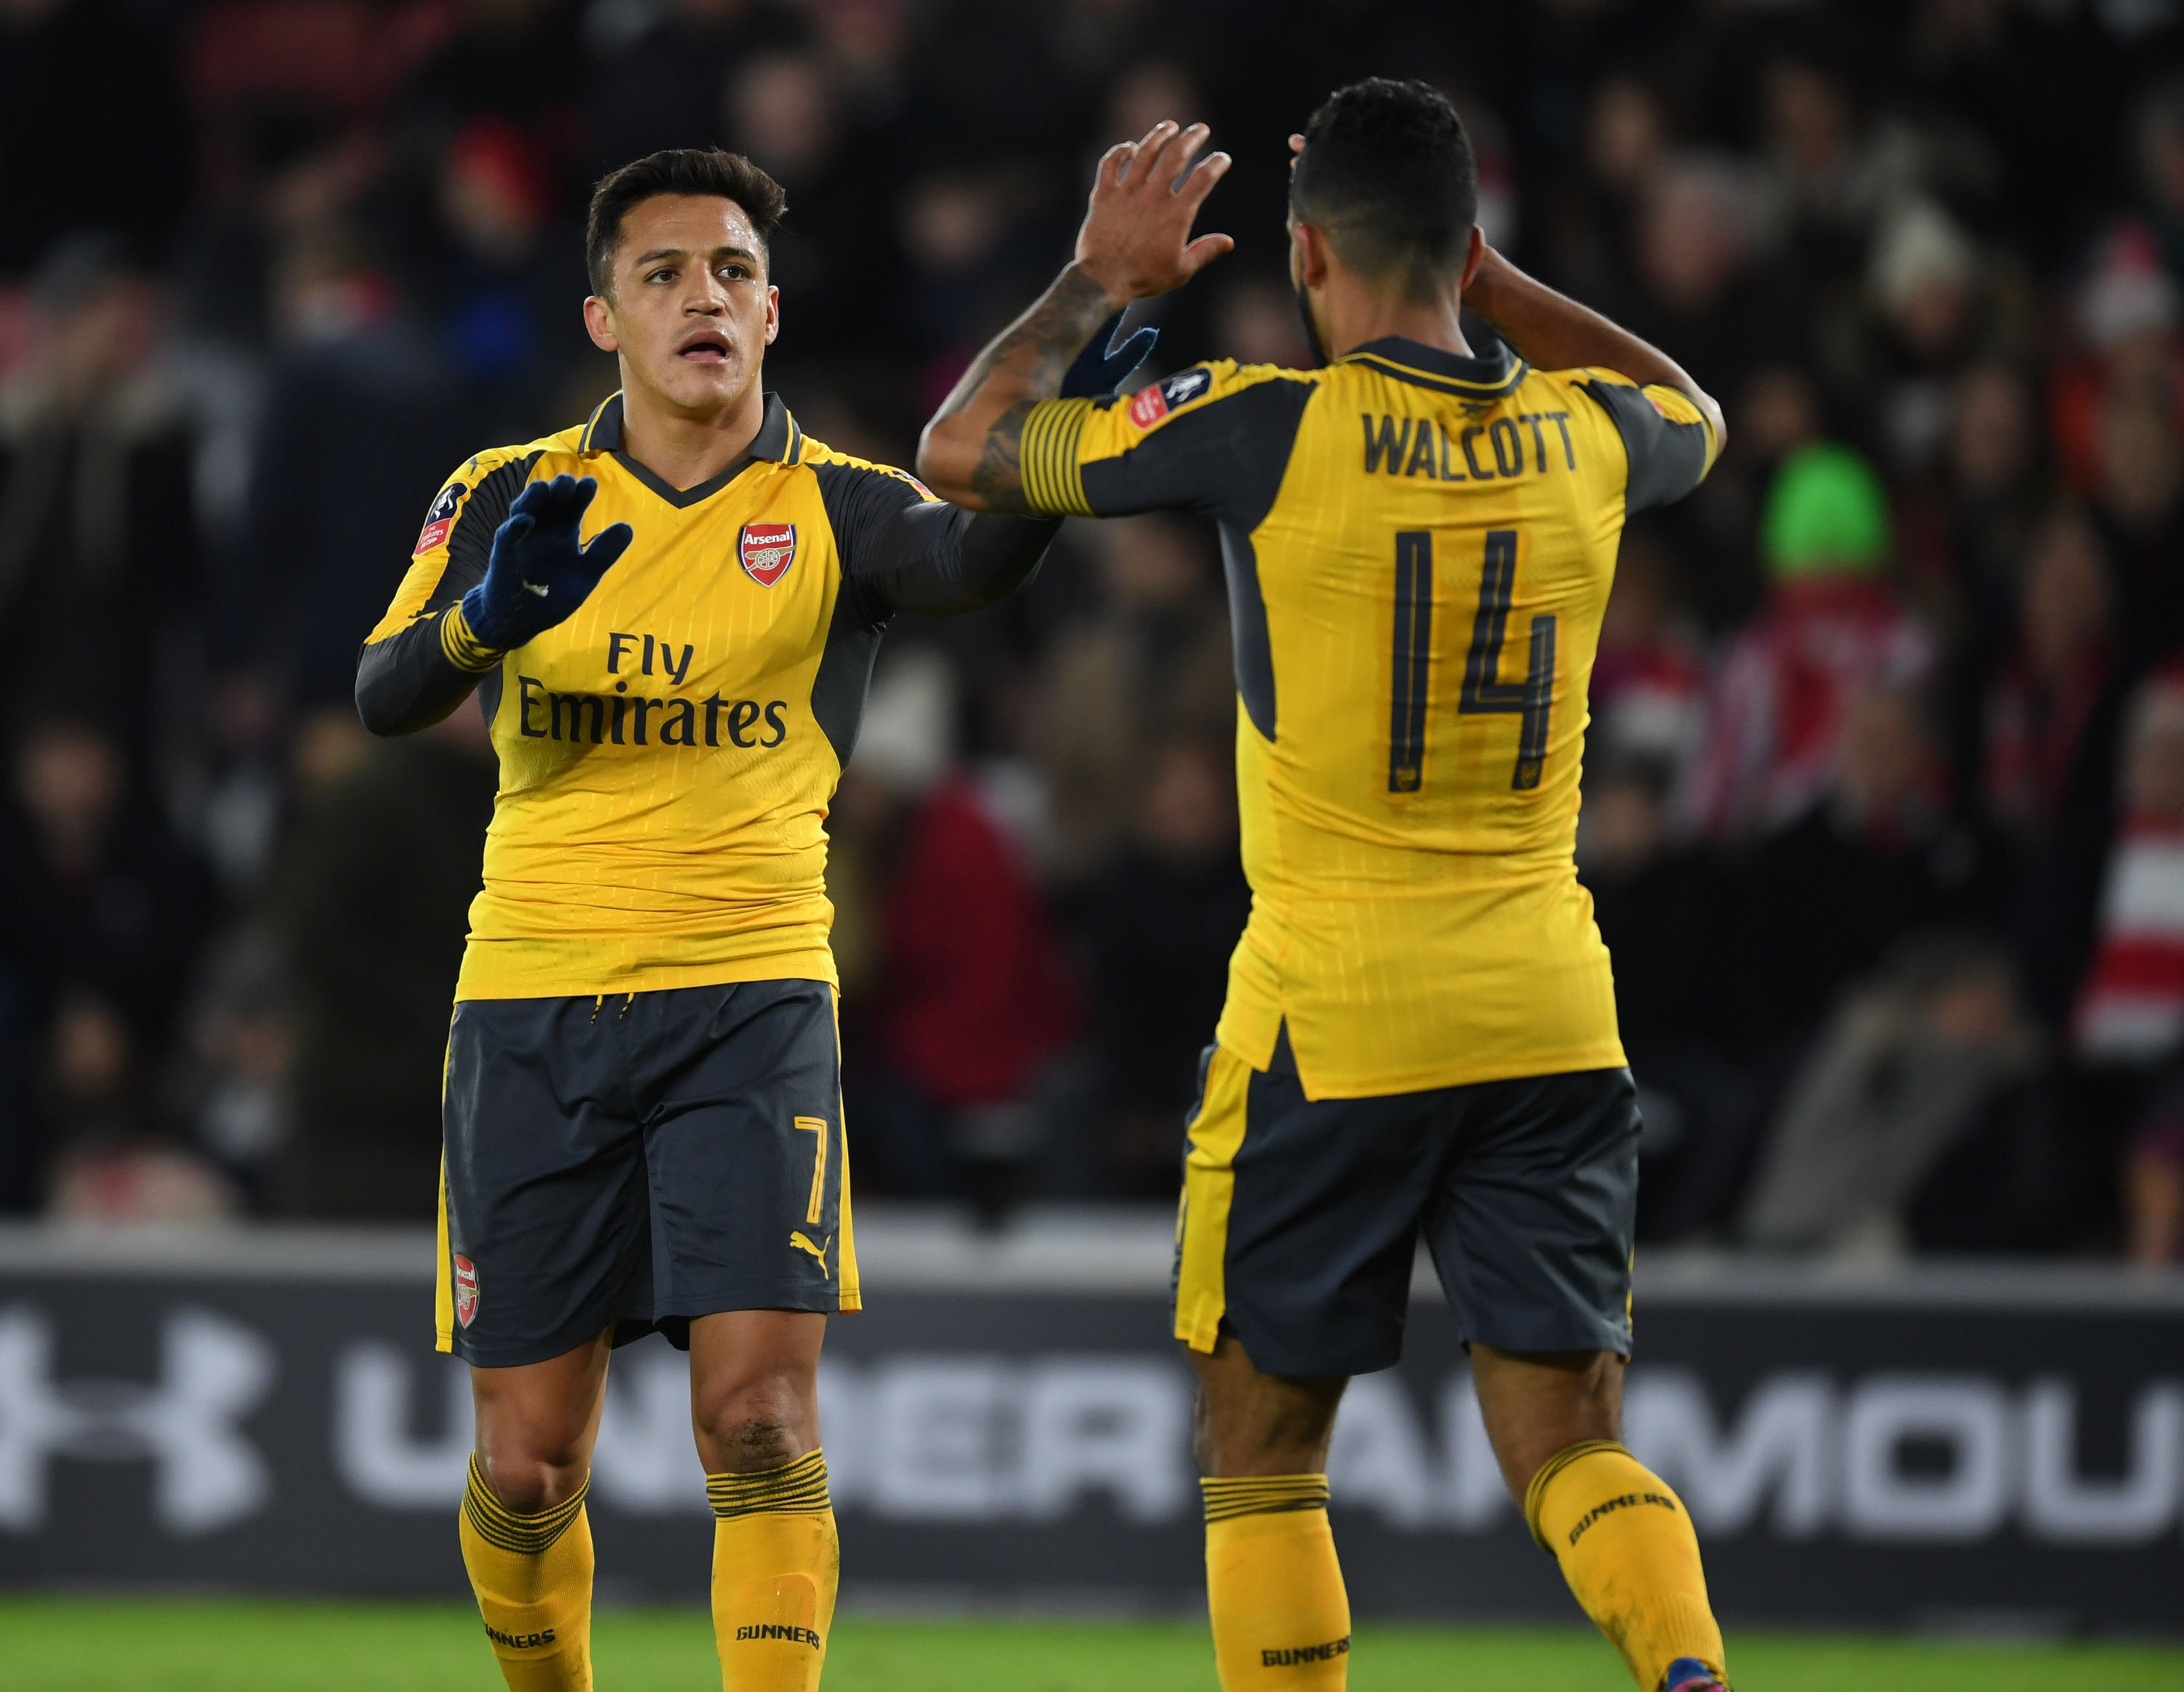 Match Previews: Arsenal v Watford